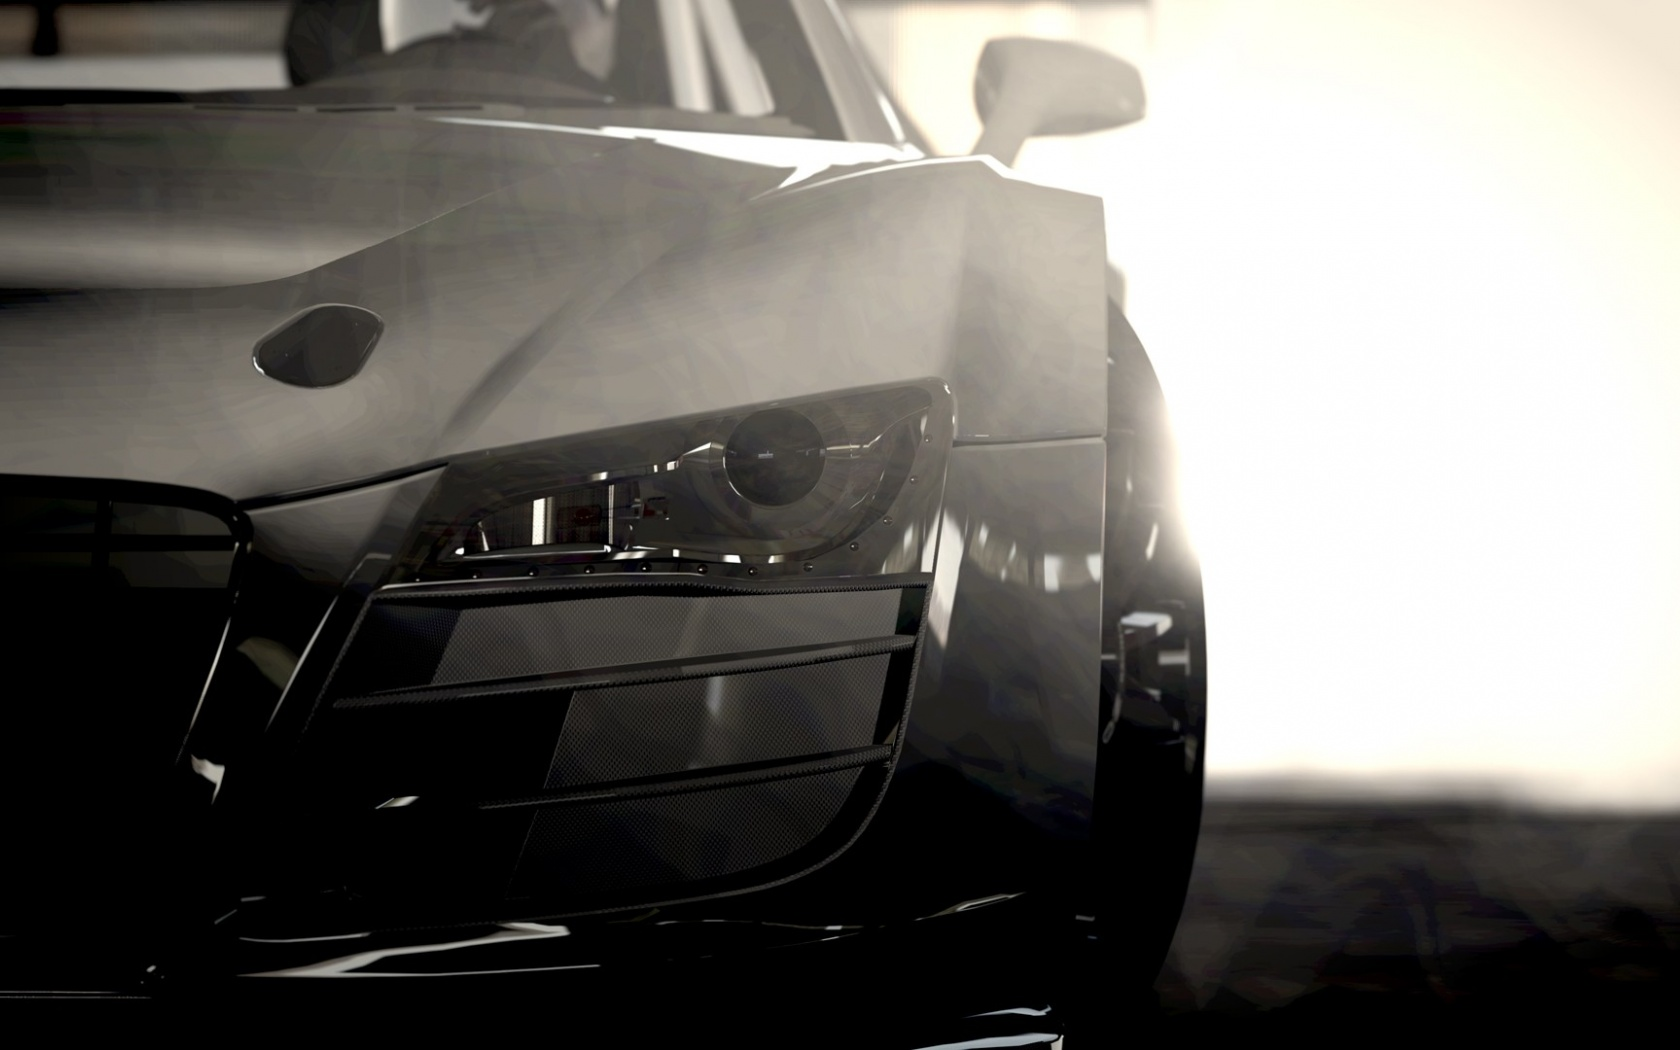 1680x1050 Silver Audi R8 Headlights Section desktop PC and Mac wallpaper